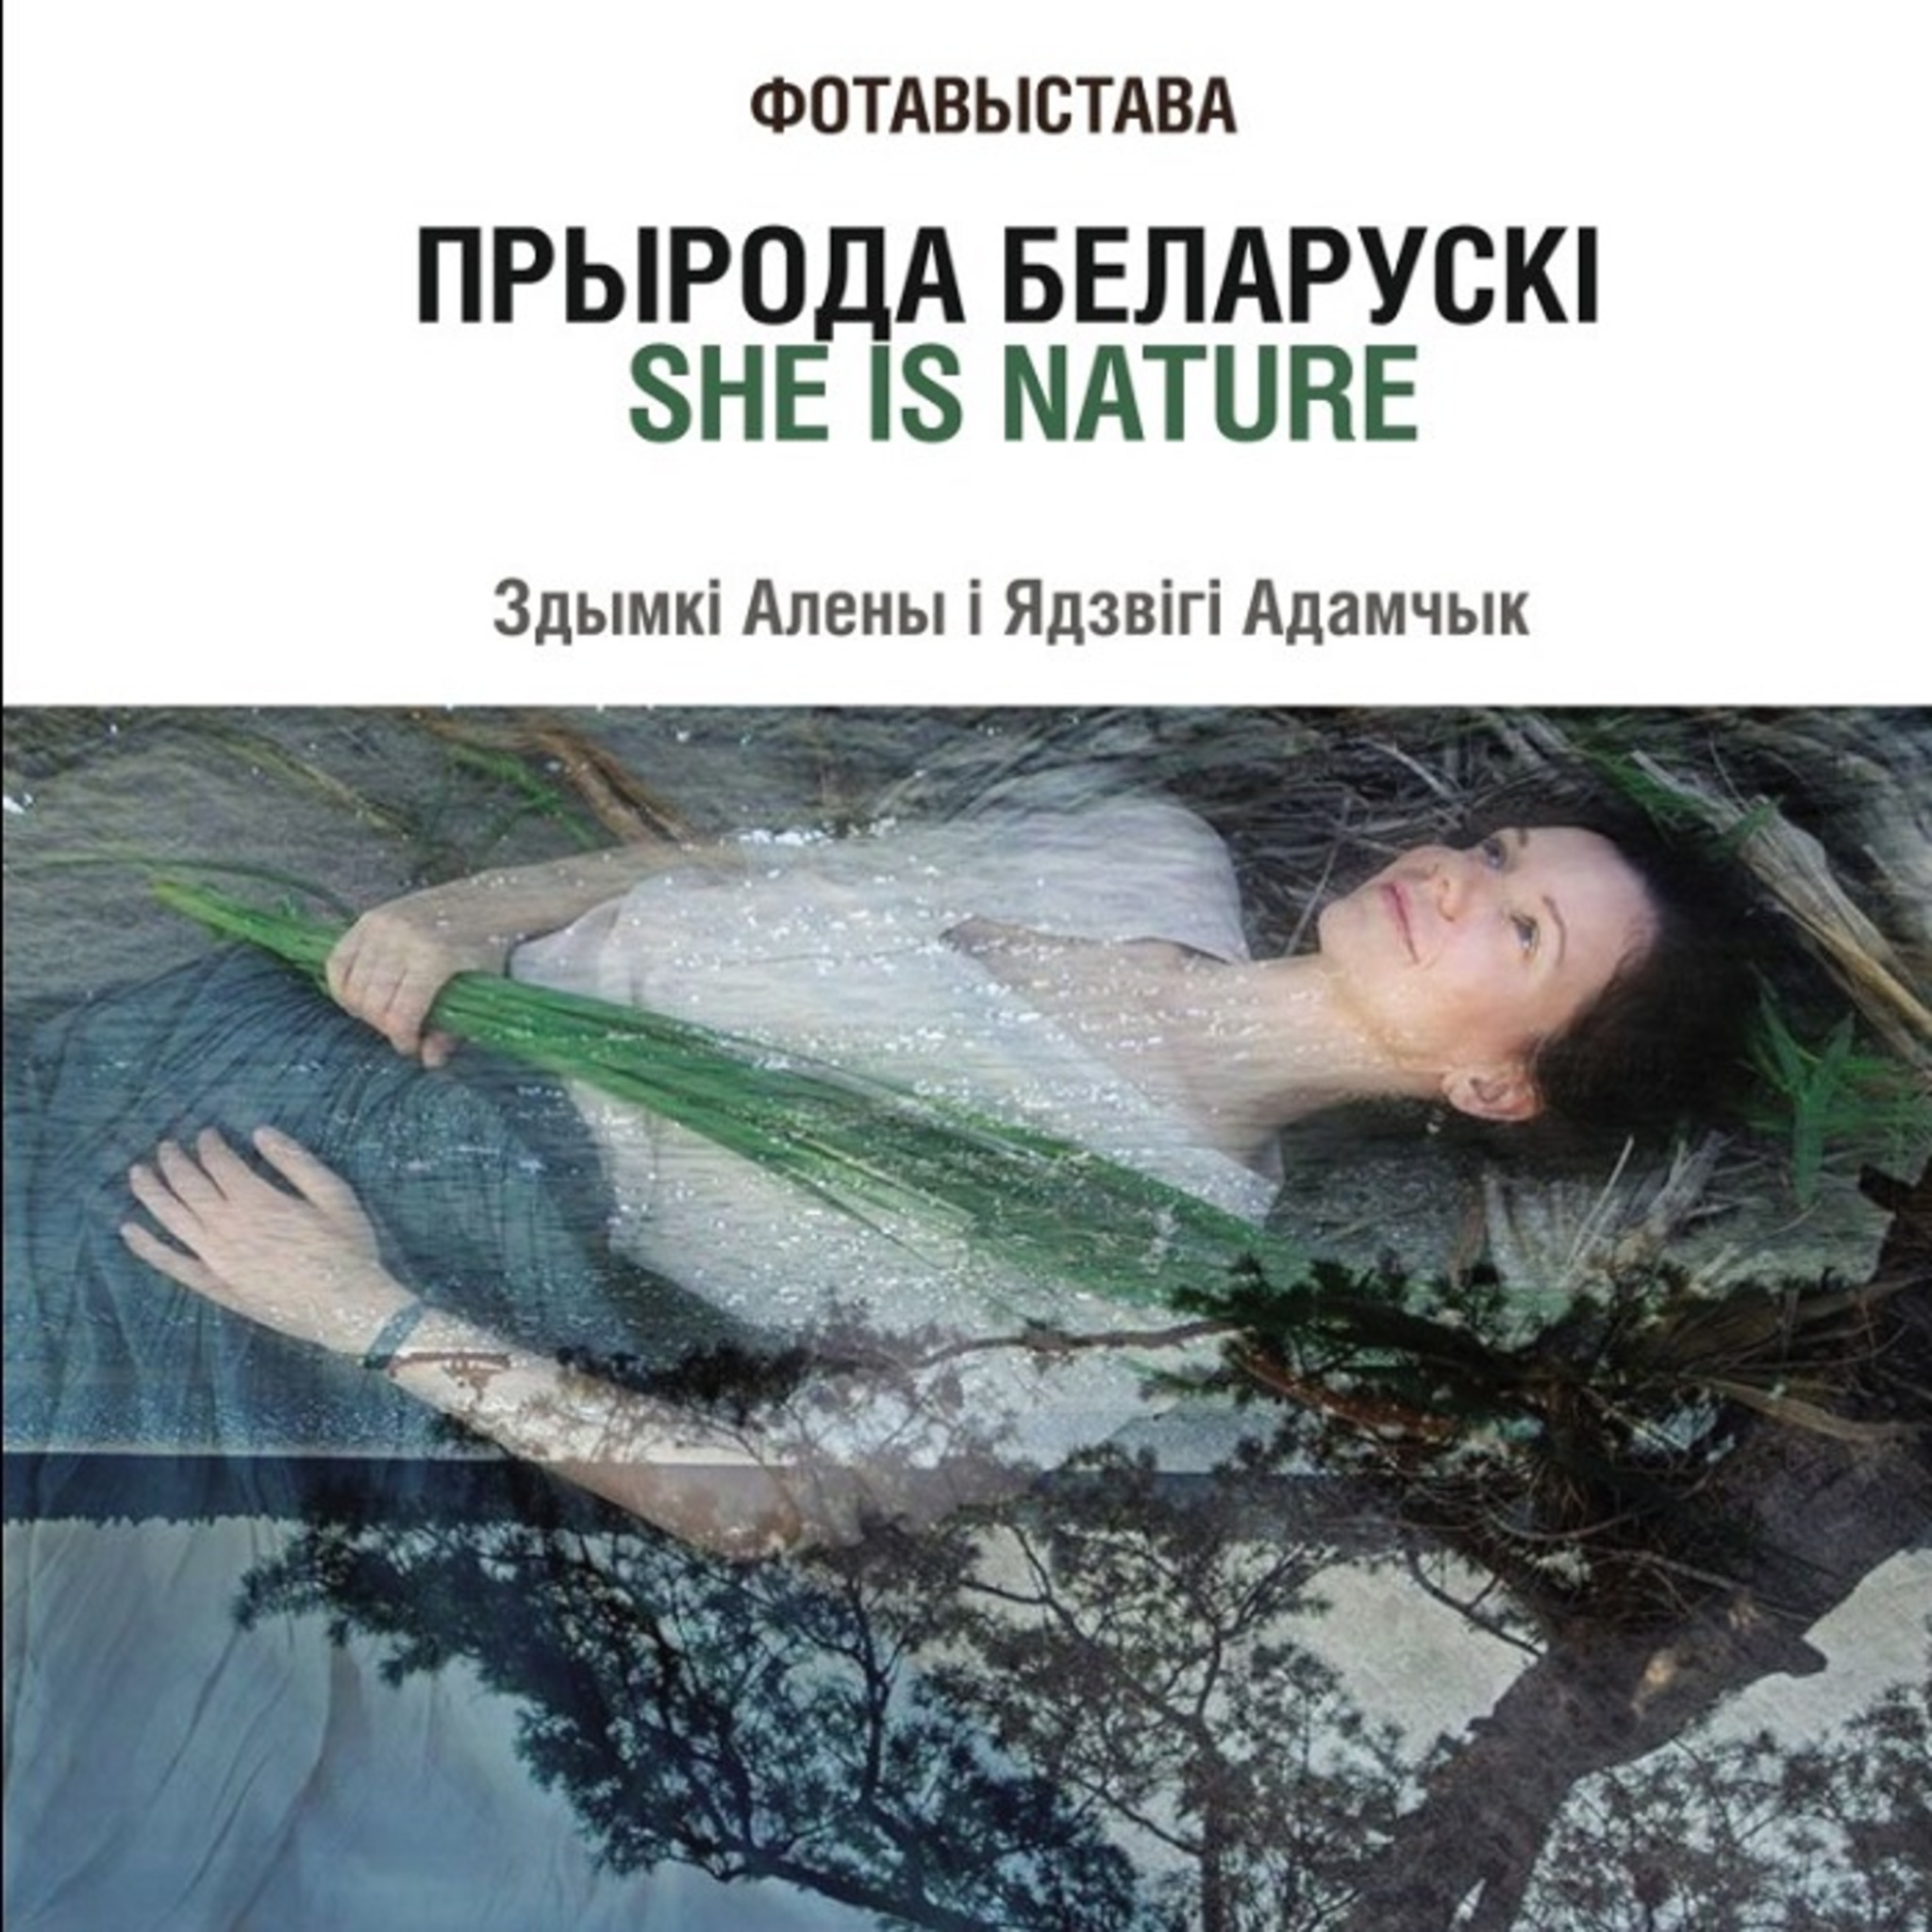 Photo-exhibition The Nature of Belarus